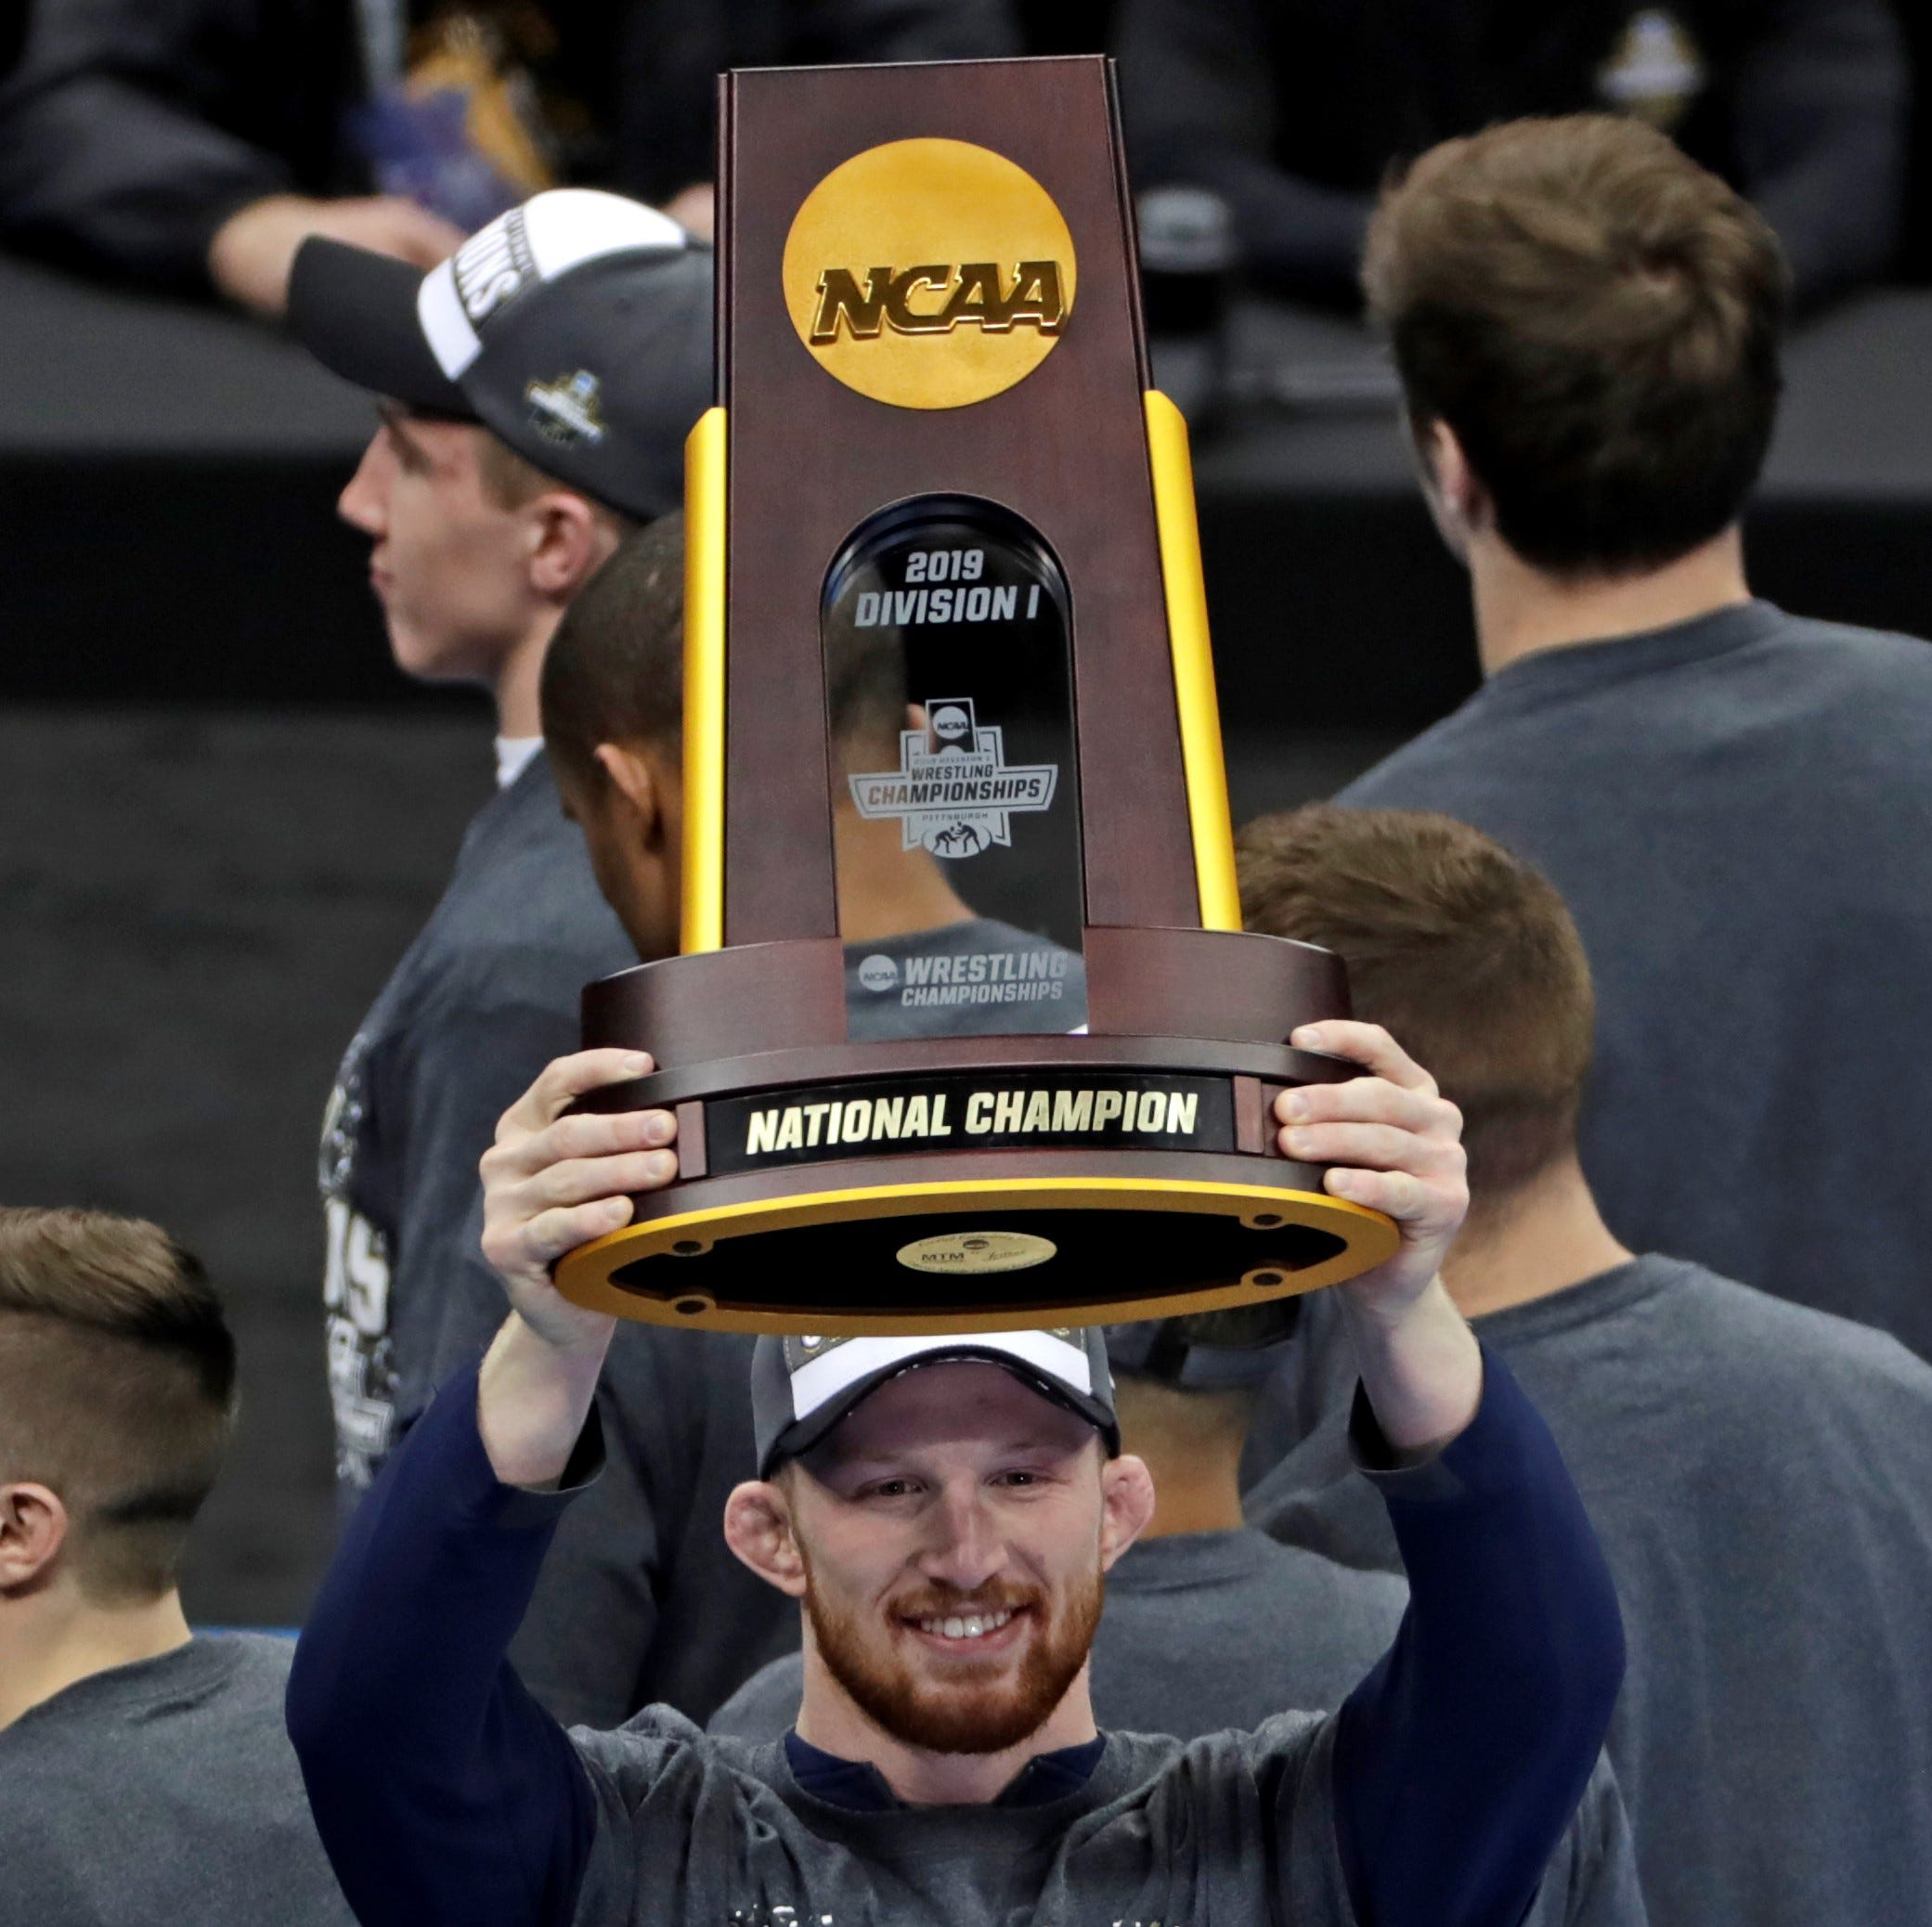 Penn State wrestling dynasty rolls on with eighth NCAA title in past nine years